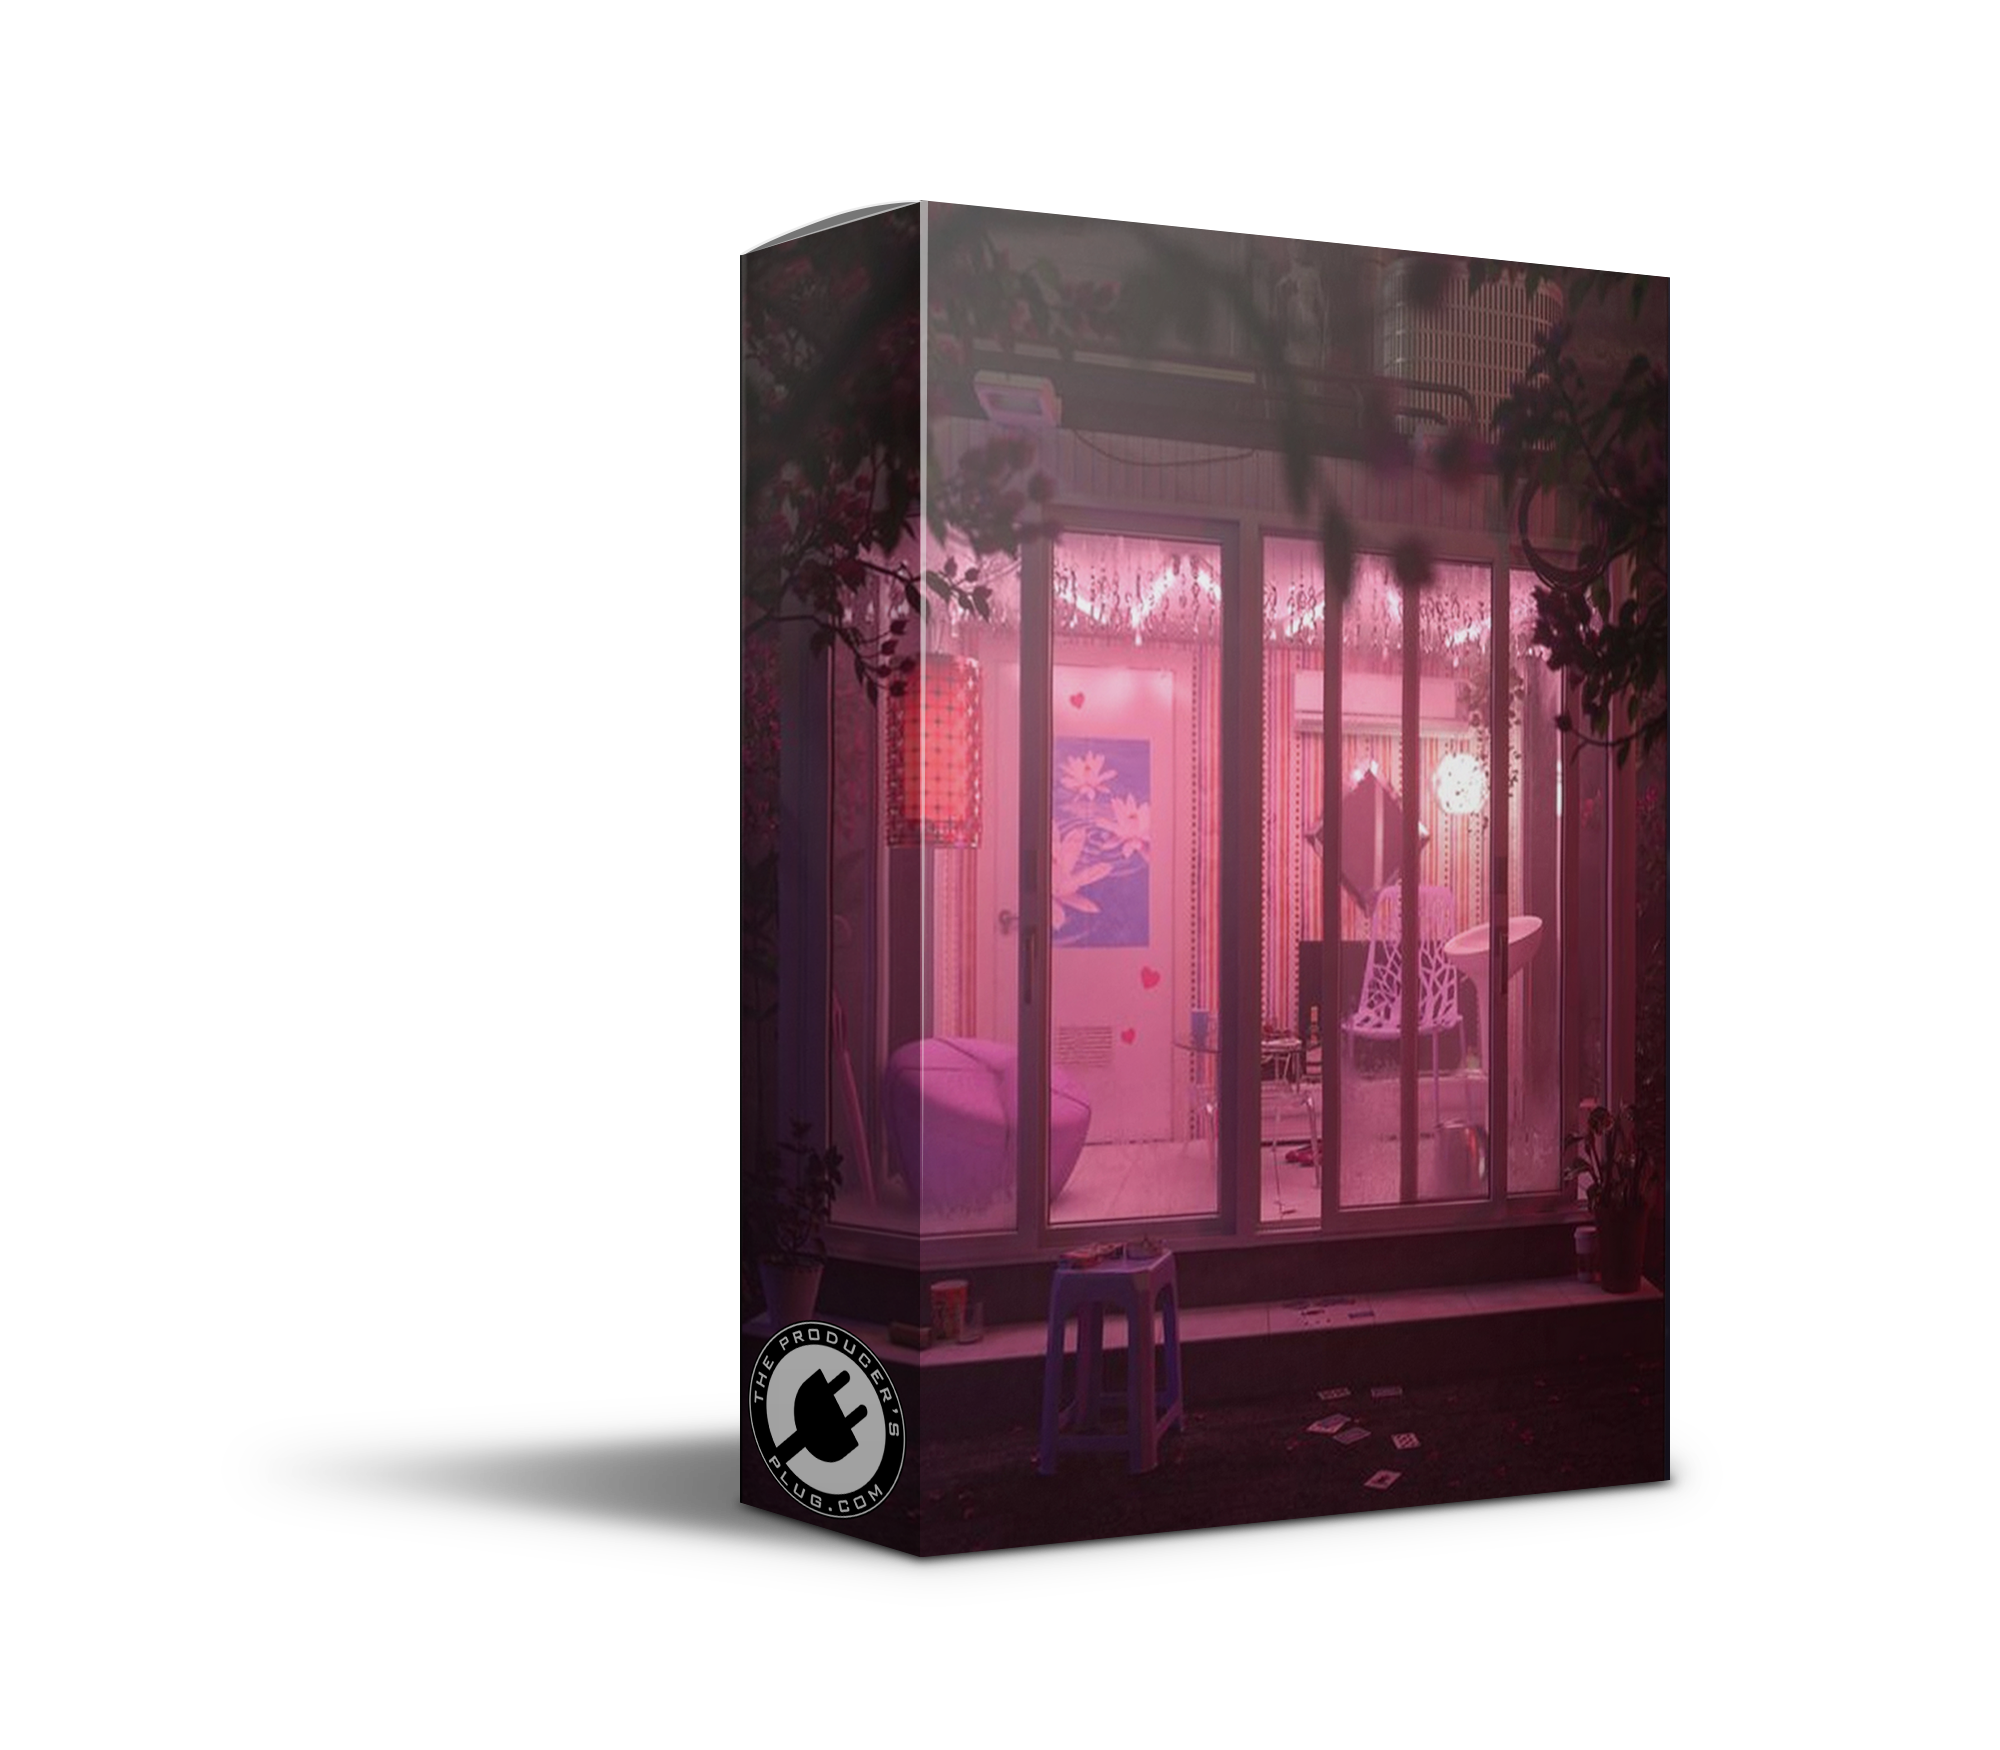 FREE Download | Canary Julz - SafeHouse (MIDI Kit) - The Producer's Plug